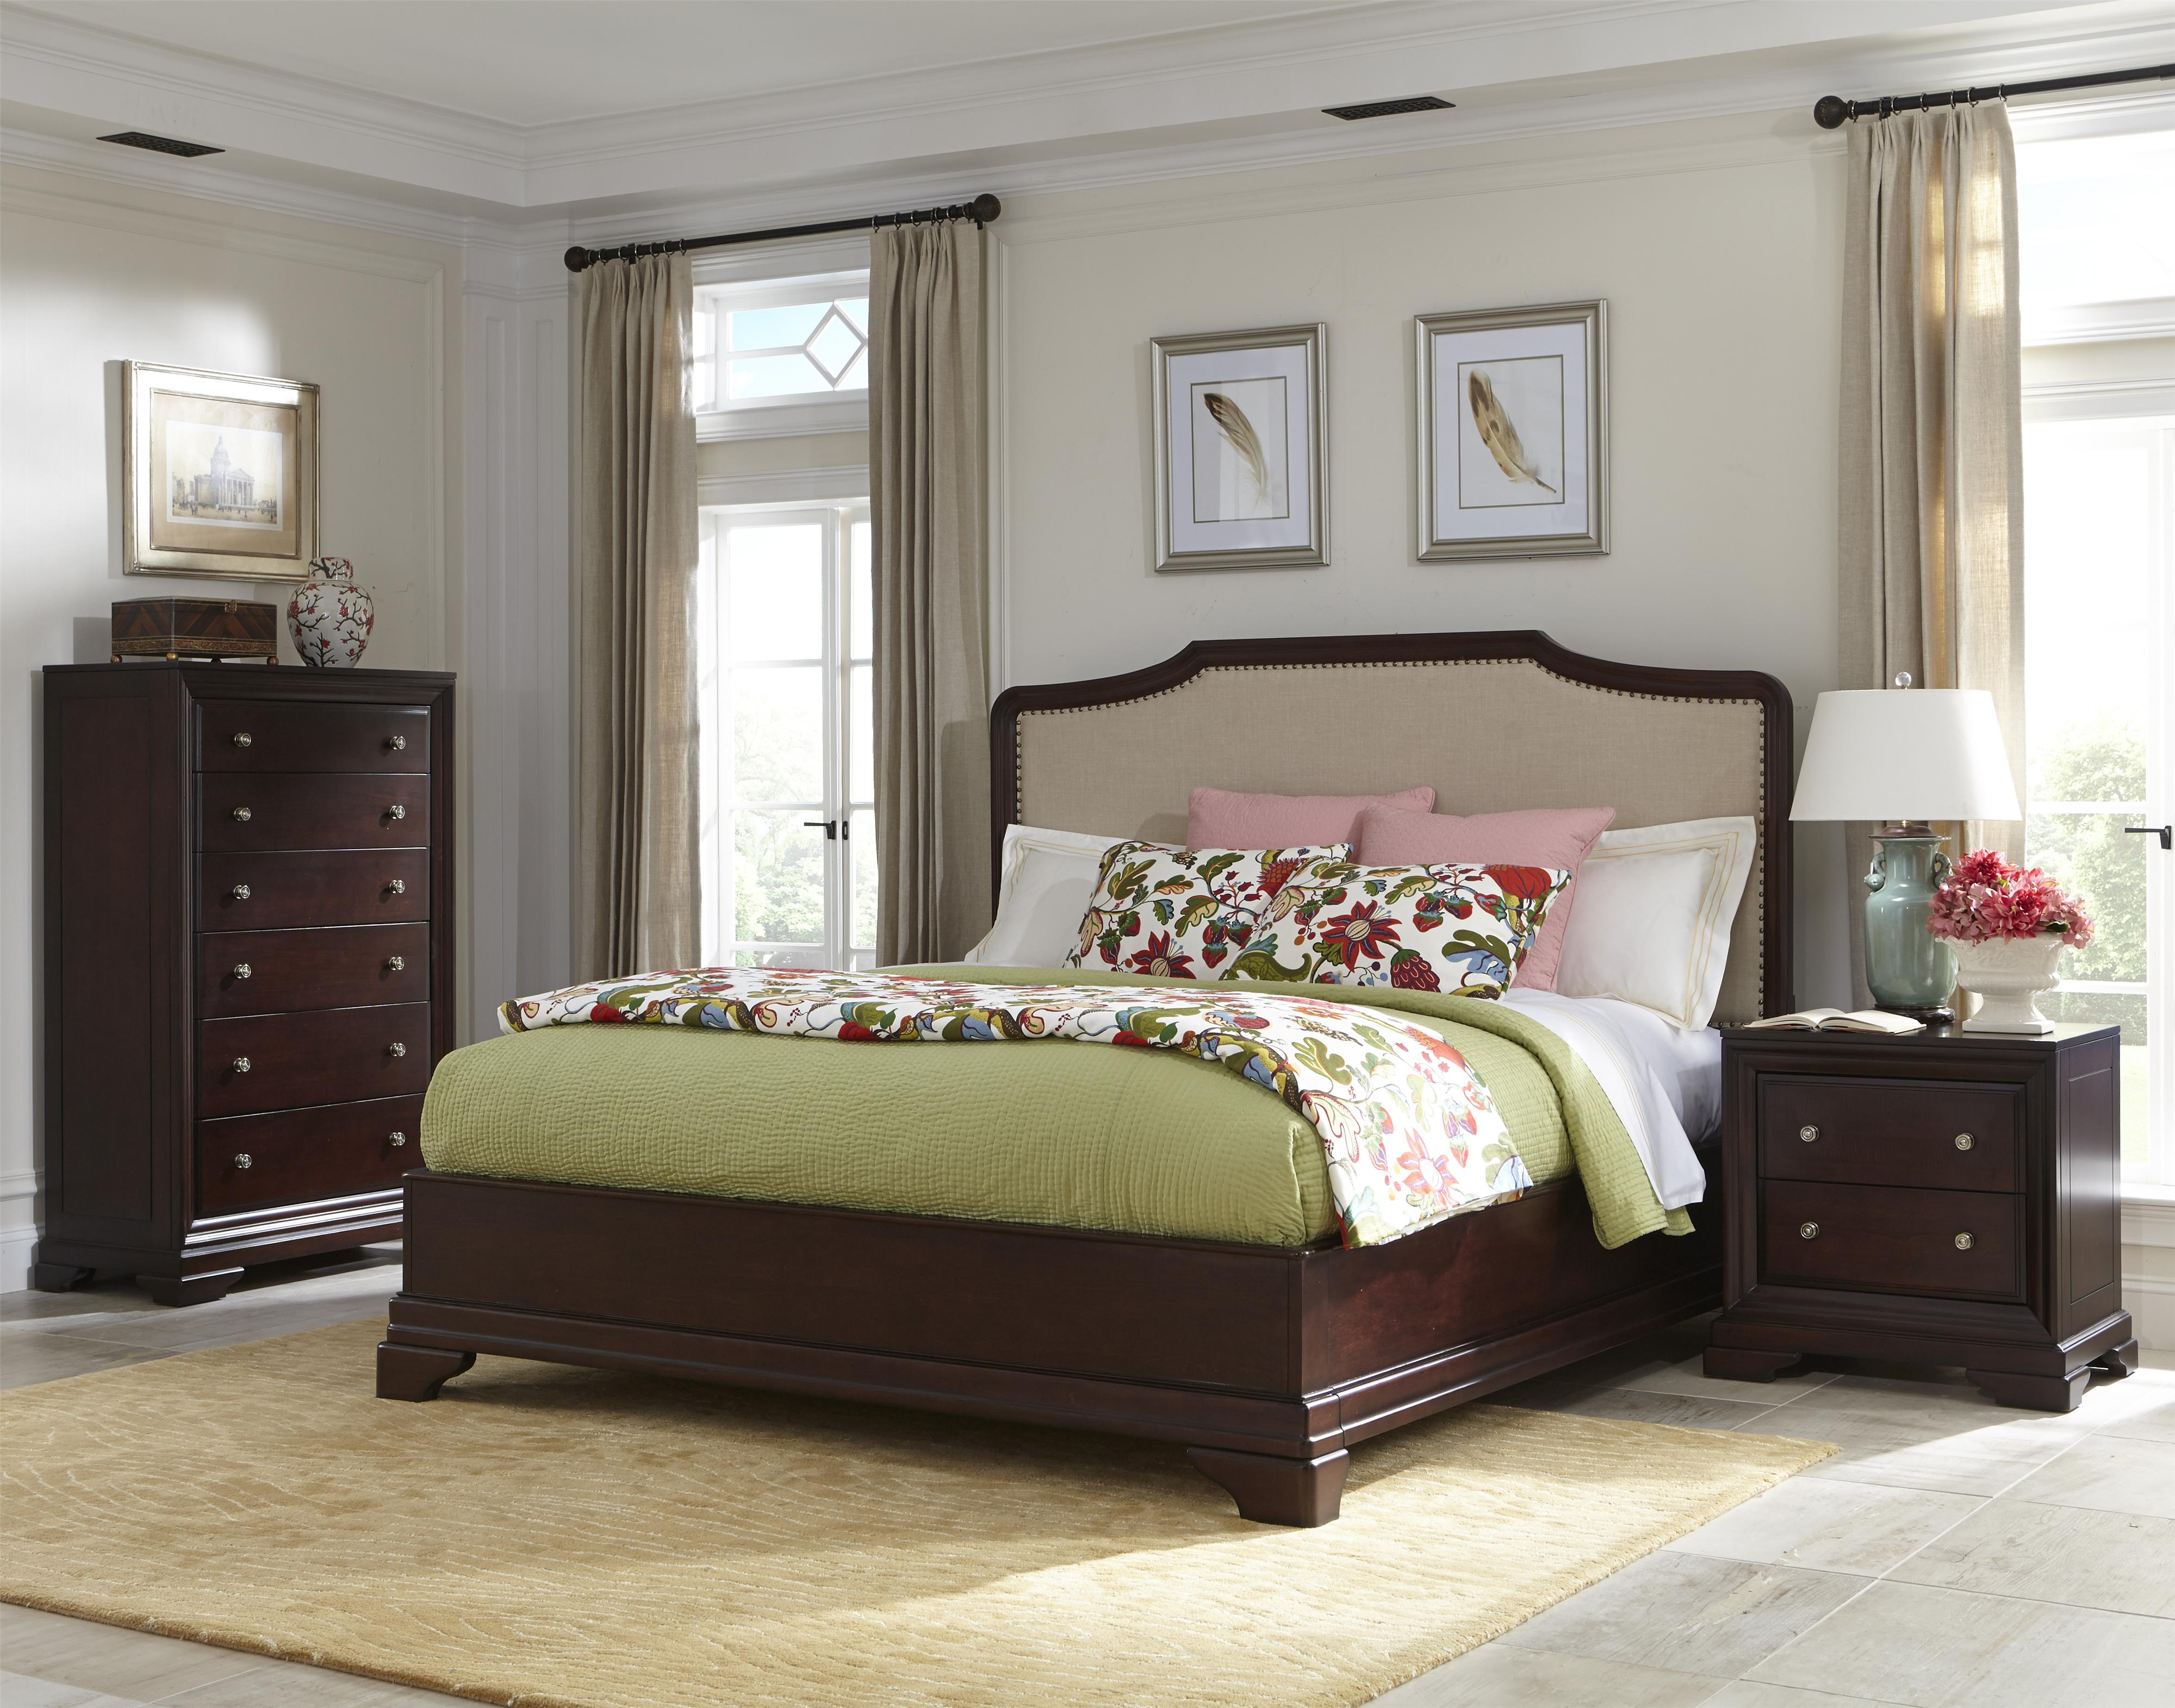 Cresent Fine Furniture Newport Cal King Bedroom Group - Item Number: 1800 CK Bedroom Group 2